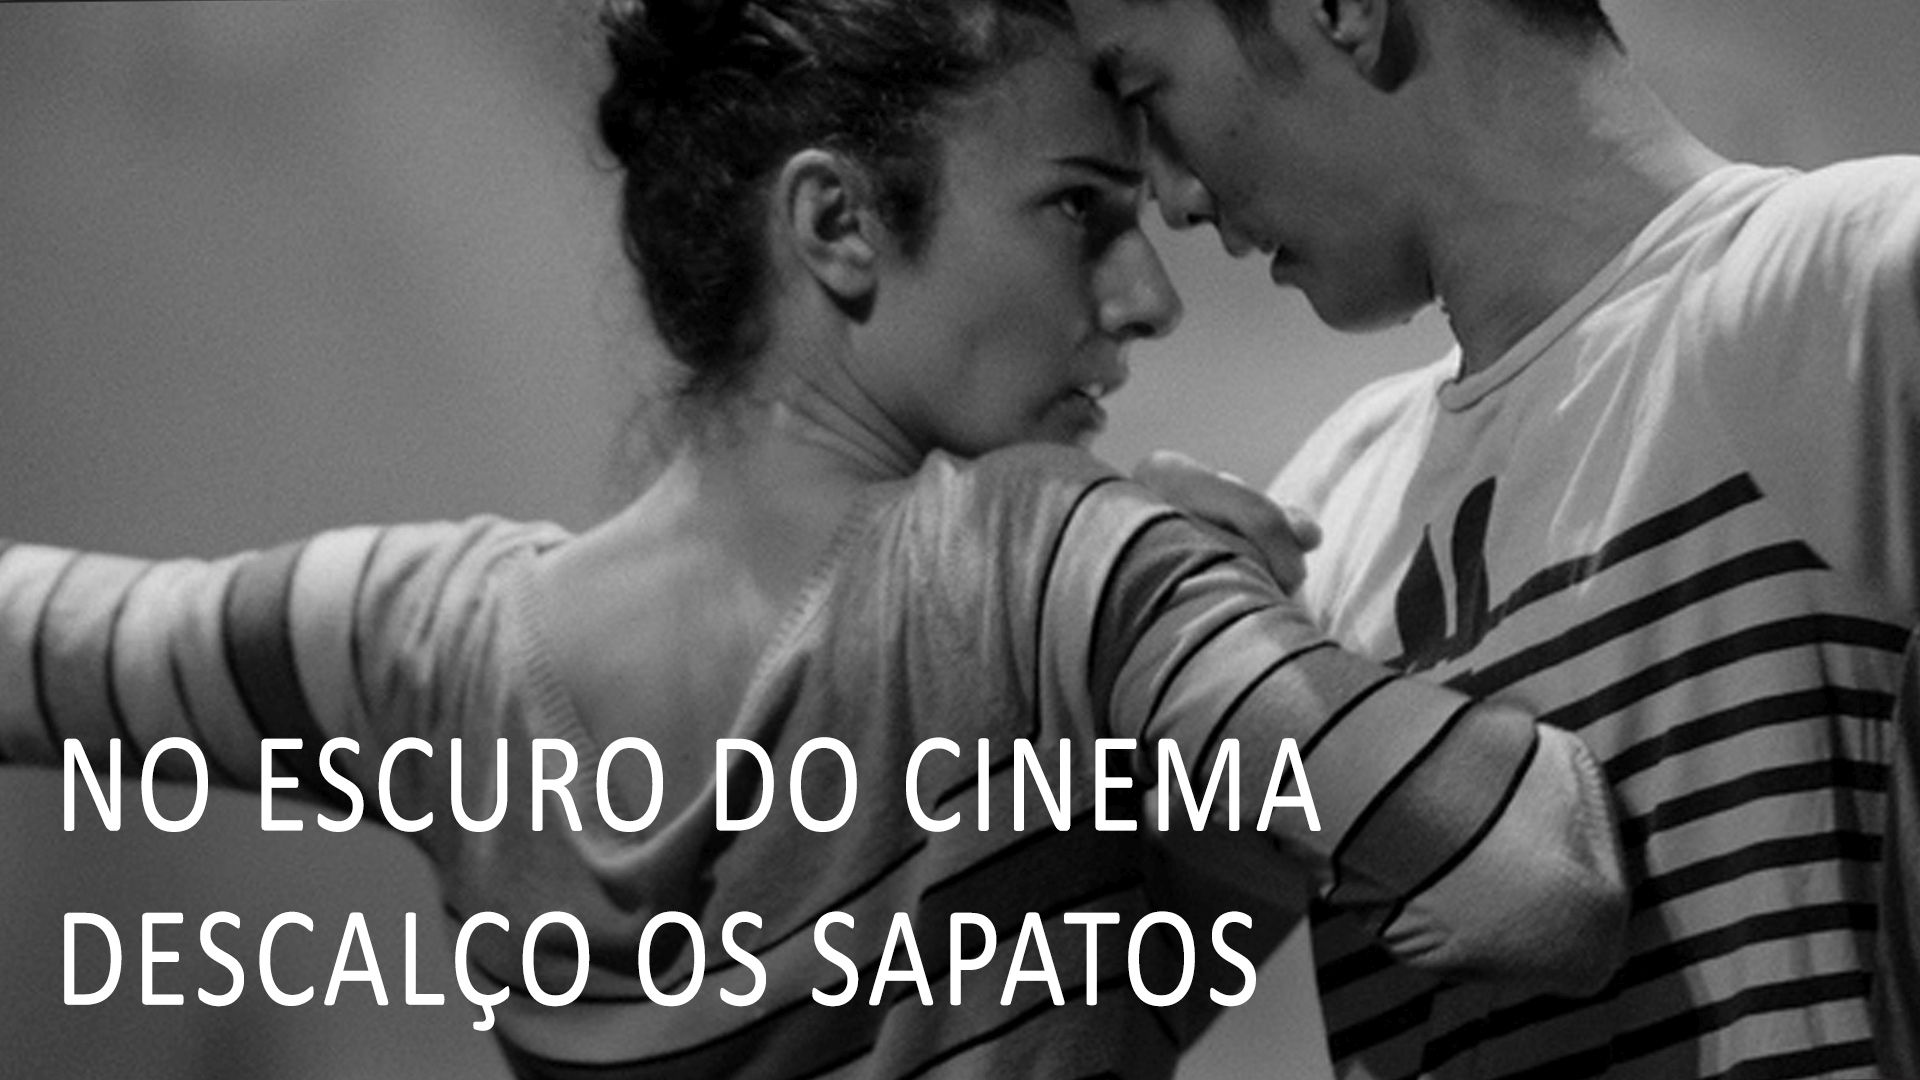 No Escuro do Cinema Descalço os Sapatos